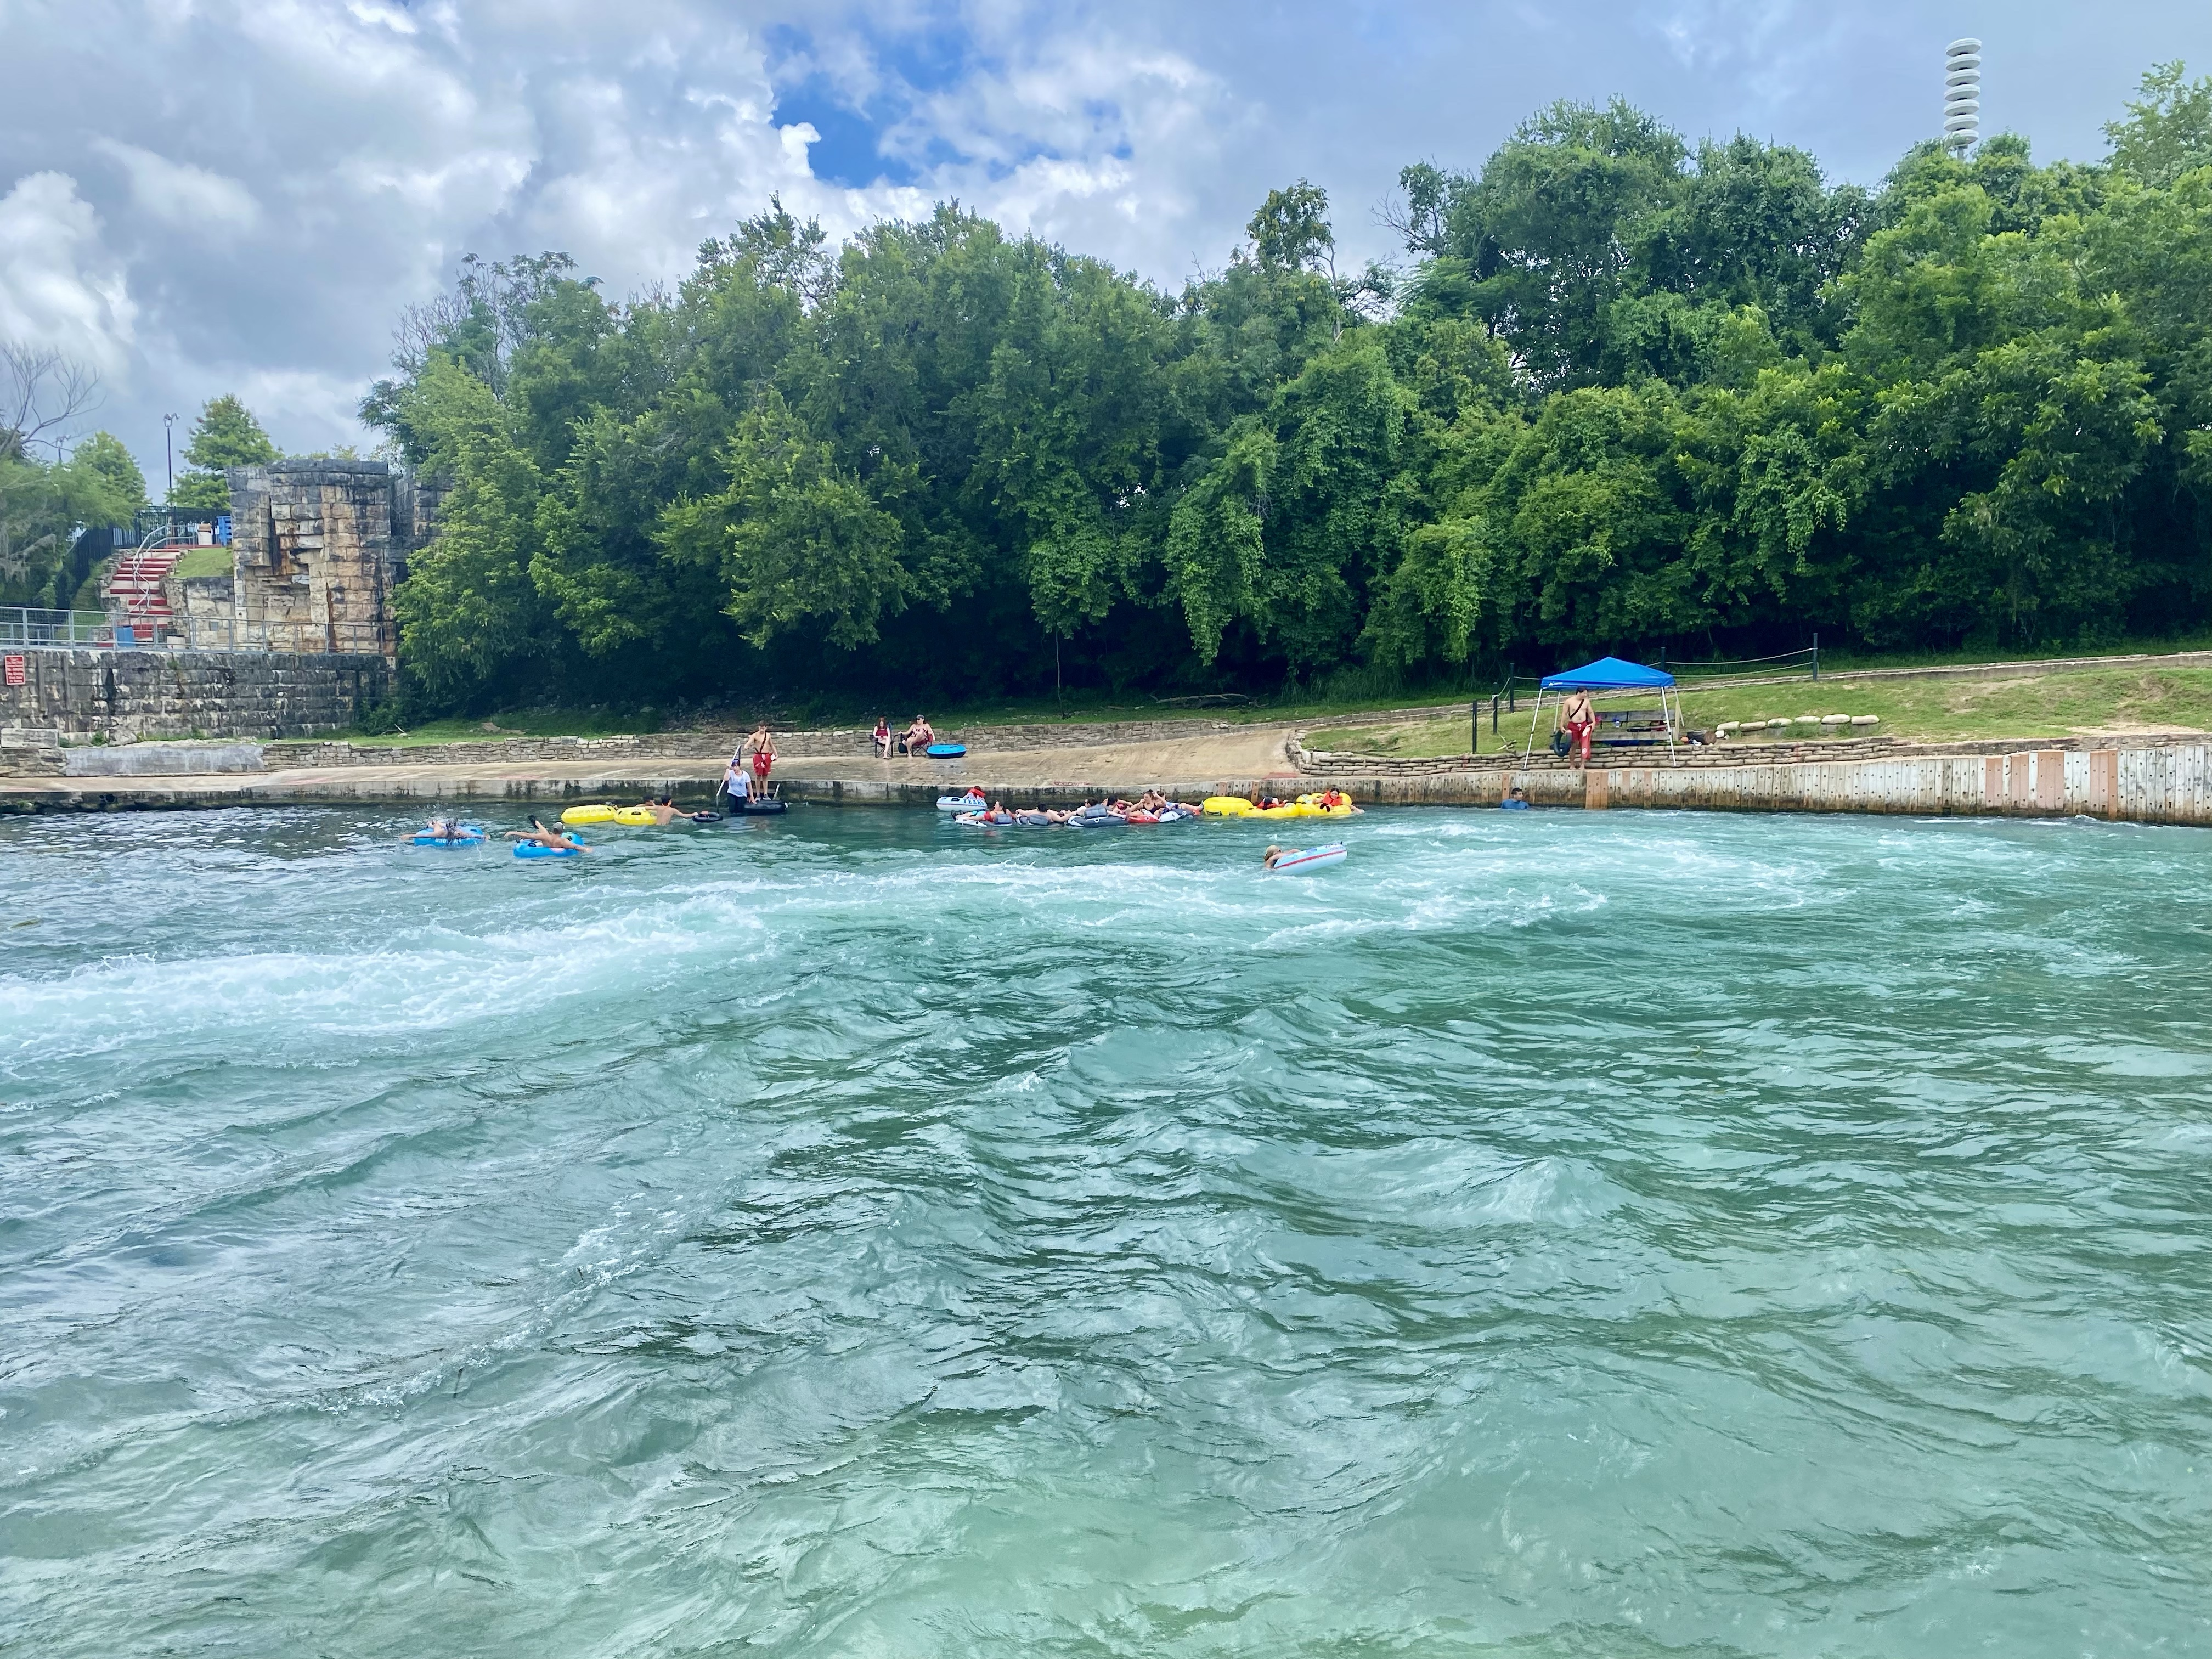 The Tube Chute on the Comal River at The Float In, New Braunfels